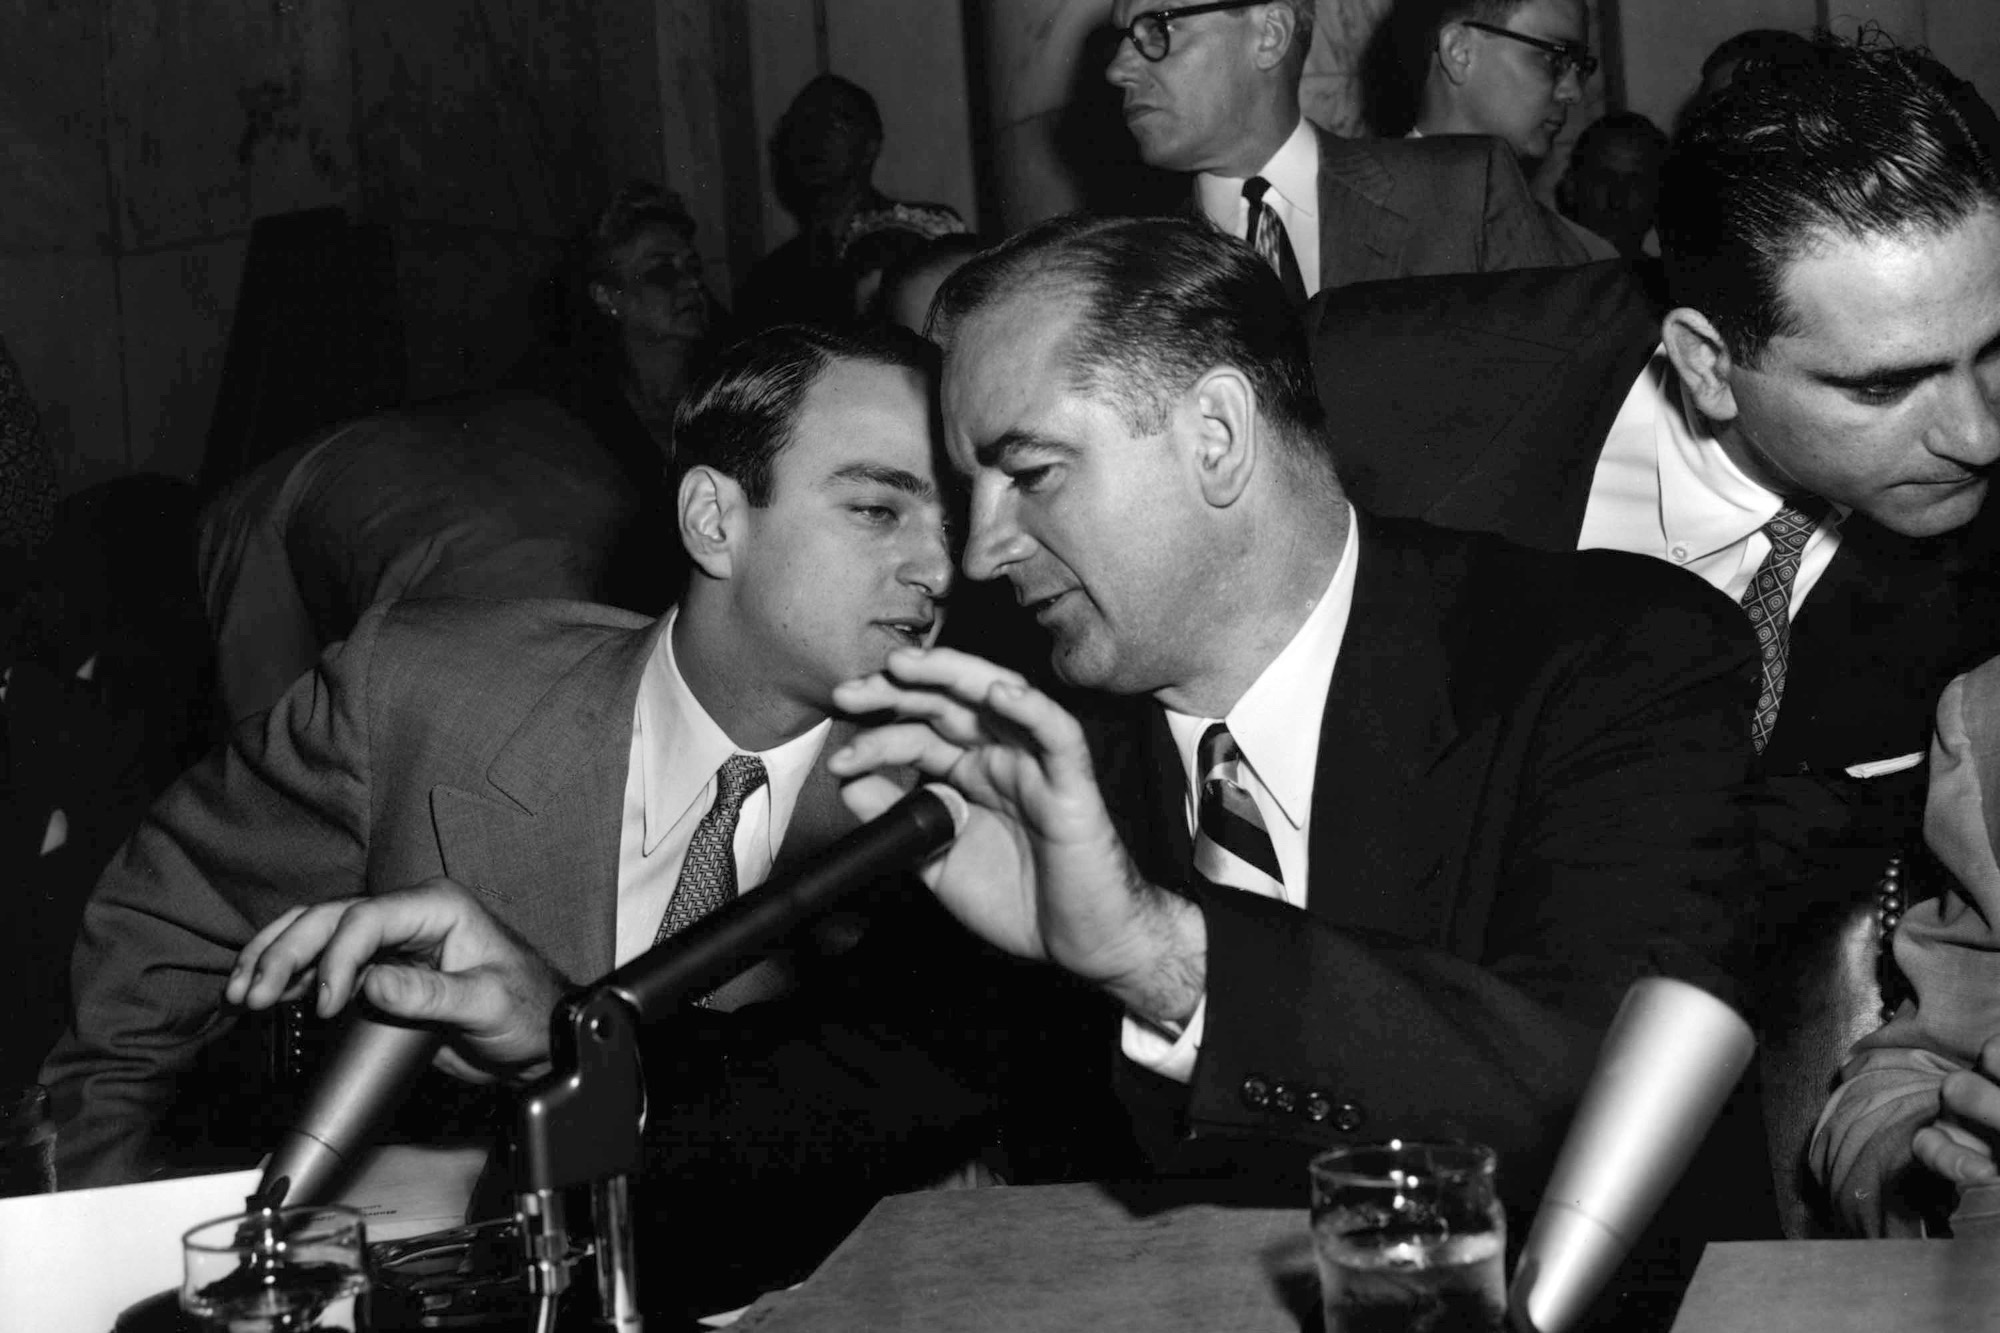 U.S. Sen. Joseph McCarthy holds both hands over microphones as he speaks to his chief counsel, Roy Cohn, during a hearing of the Senate Investigations Subcommittee in Washington April 22, 1954. The subcommittee was looking into McCarthy's dispute with top Army officials.